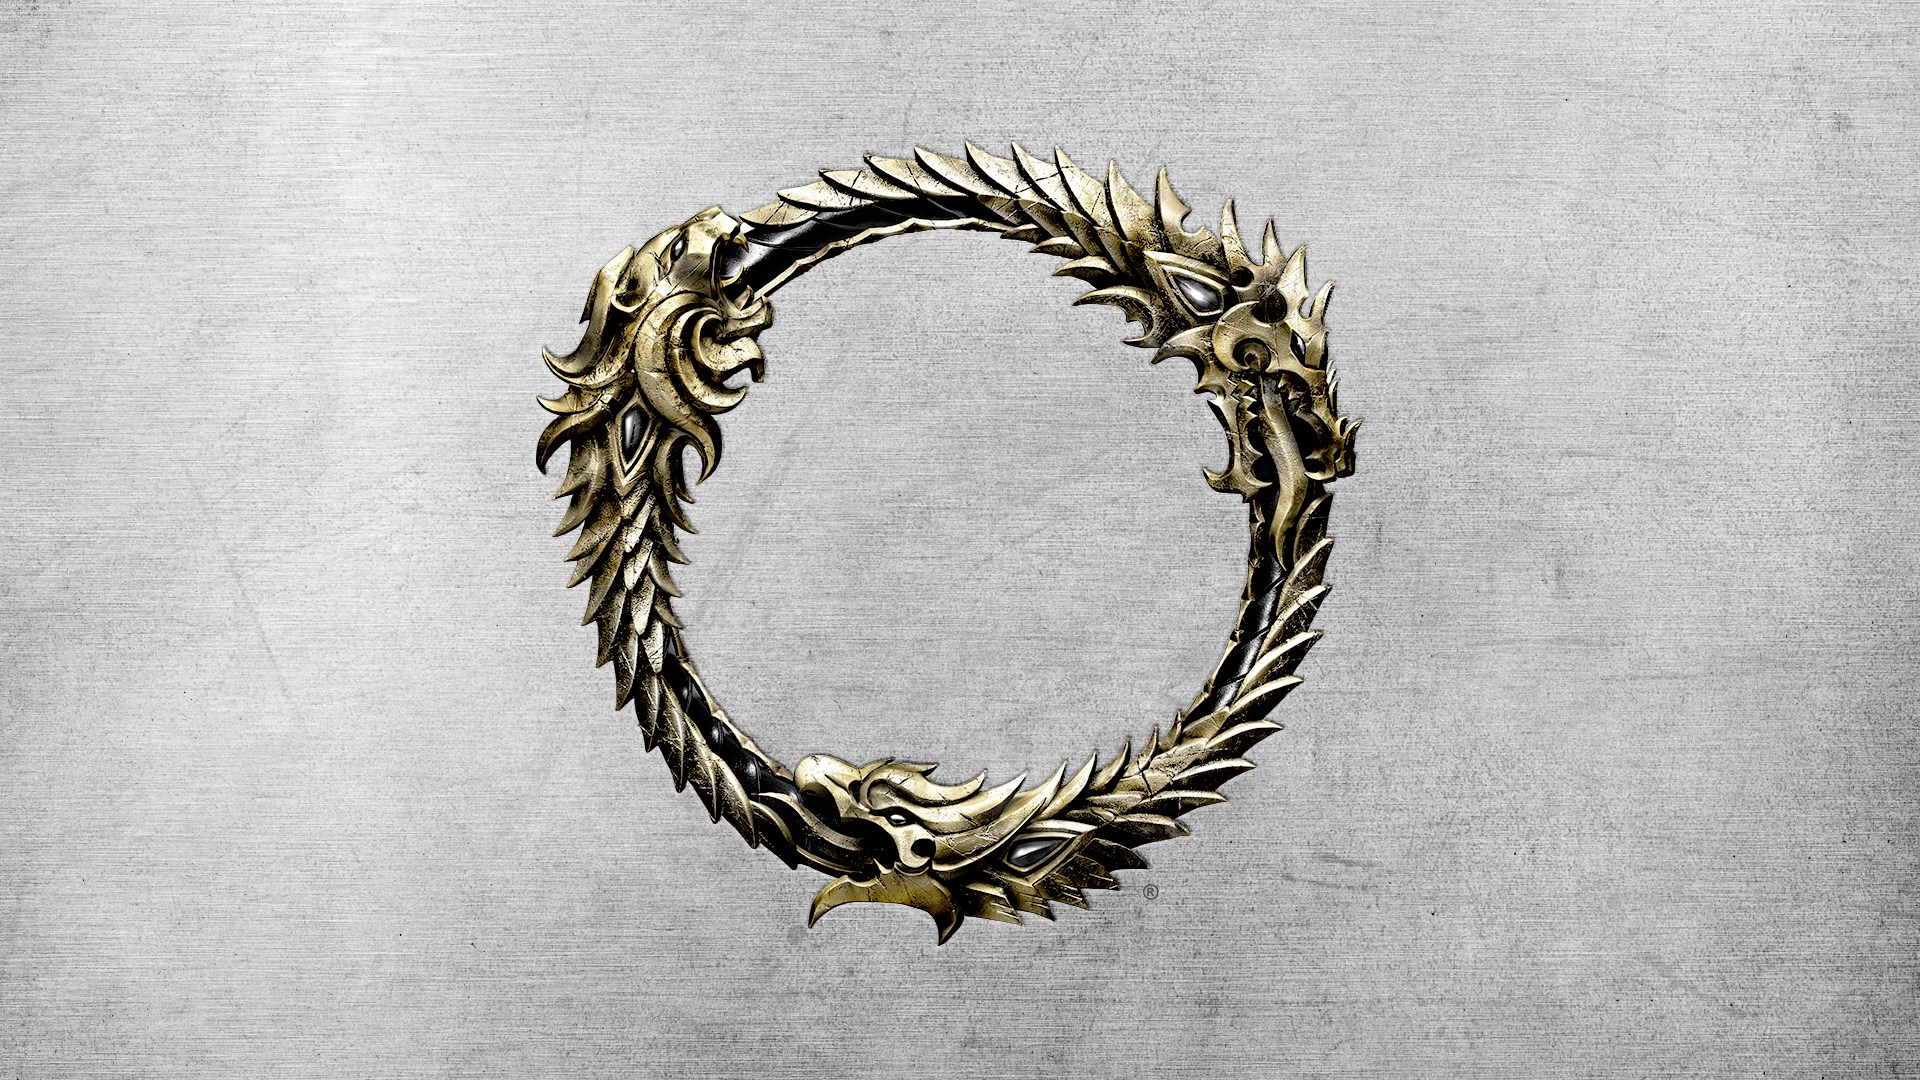 How To Draw A Perfect Circle 2009 Online buy the elder scrolls® online - microsoft store